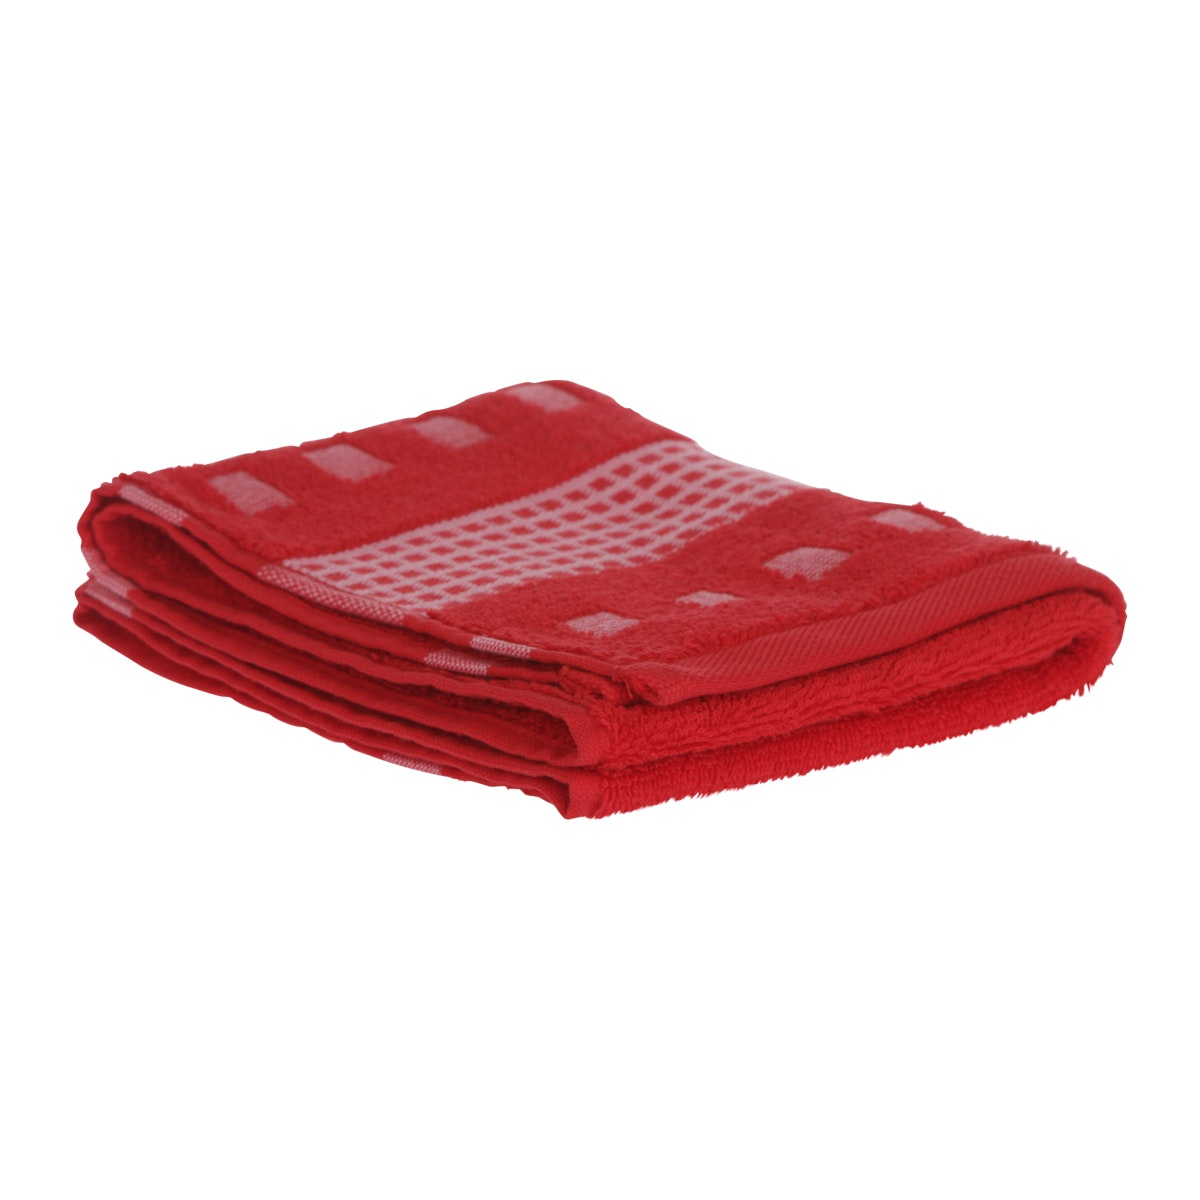 JYSK Towel Kronborg Gold 80X34 Red